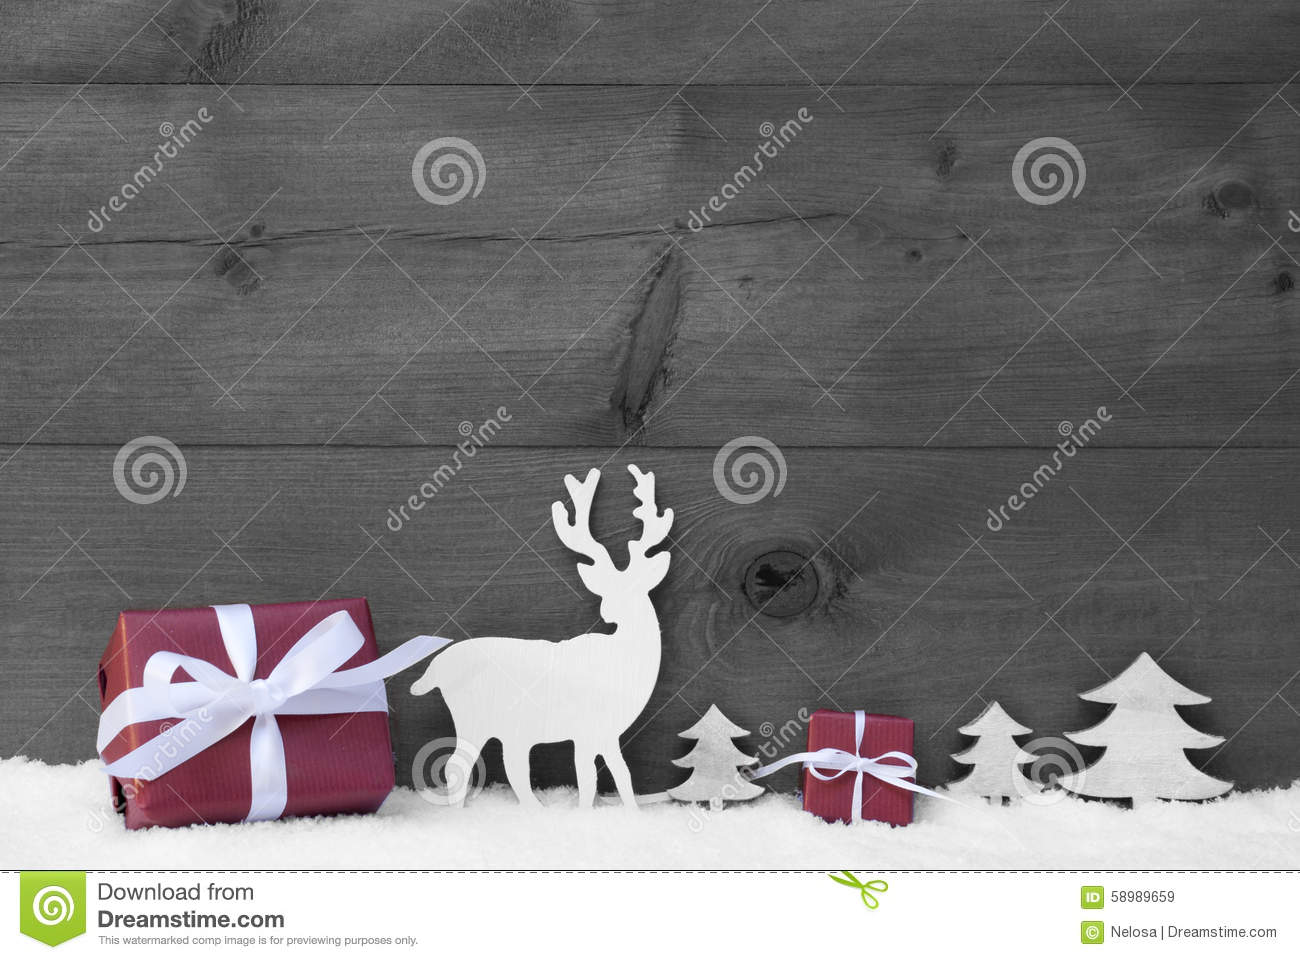 Black and white christmas decoration with red gifts or presents moose or reindeer and christmas trees on snow christmas card for seasons greetings